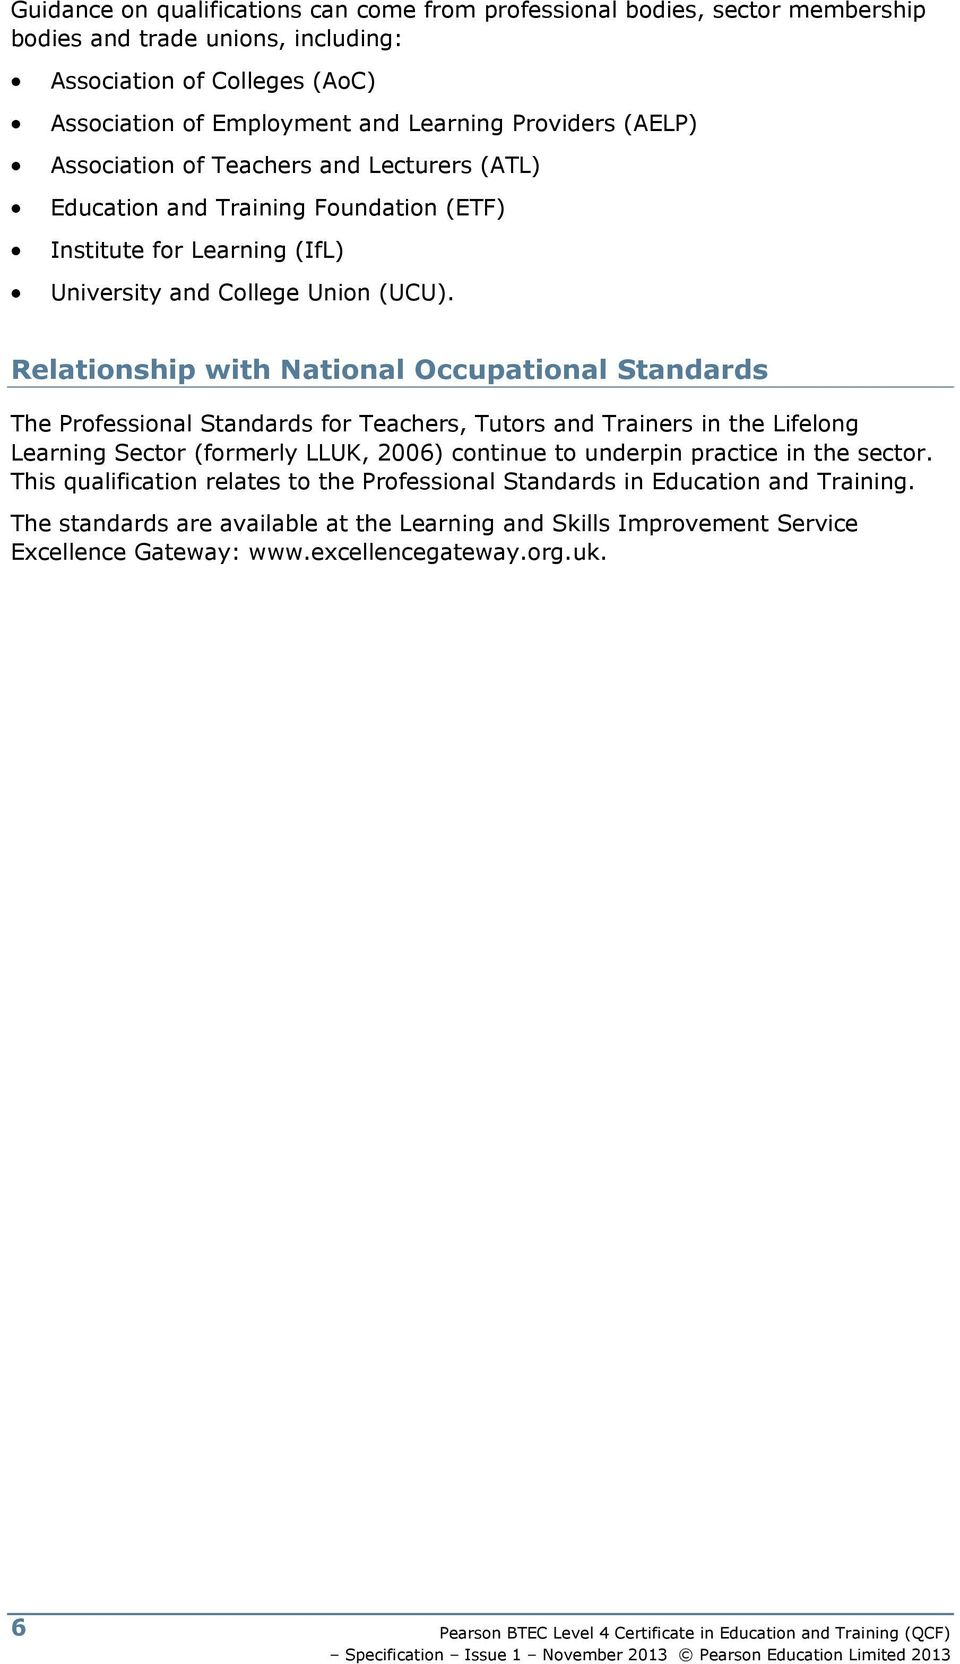 Relationship with National Occupational Standards The Professional Standards for Teachers, Tutors and Trainers in the Lifelong Learning Sector (formerly LLUK, 2006) continue to underpin practice in